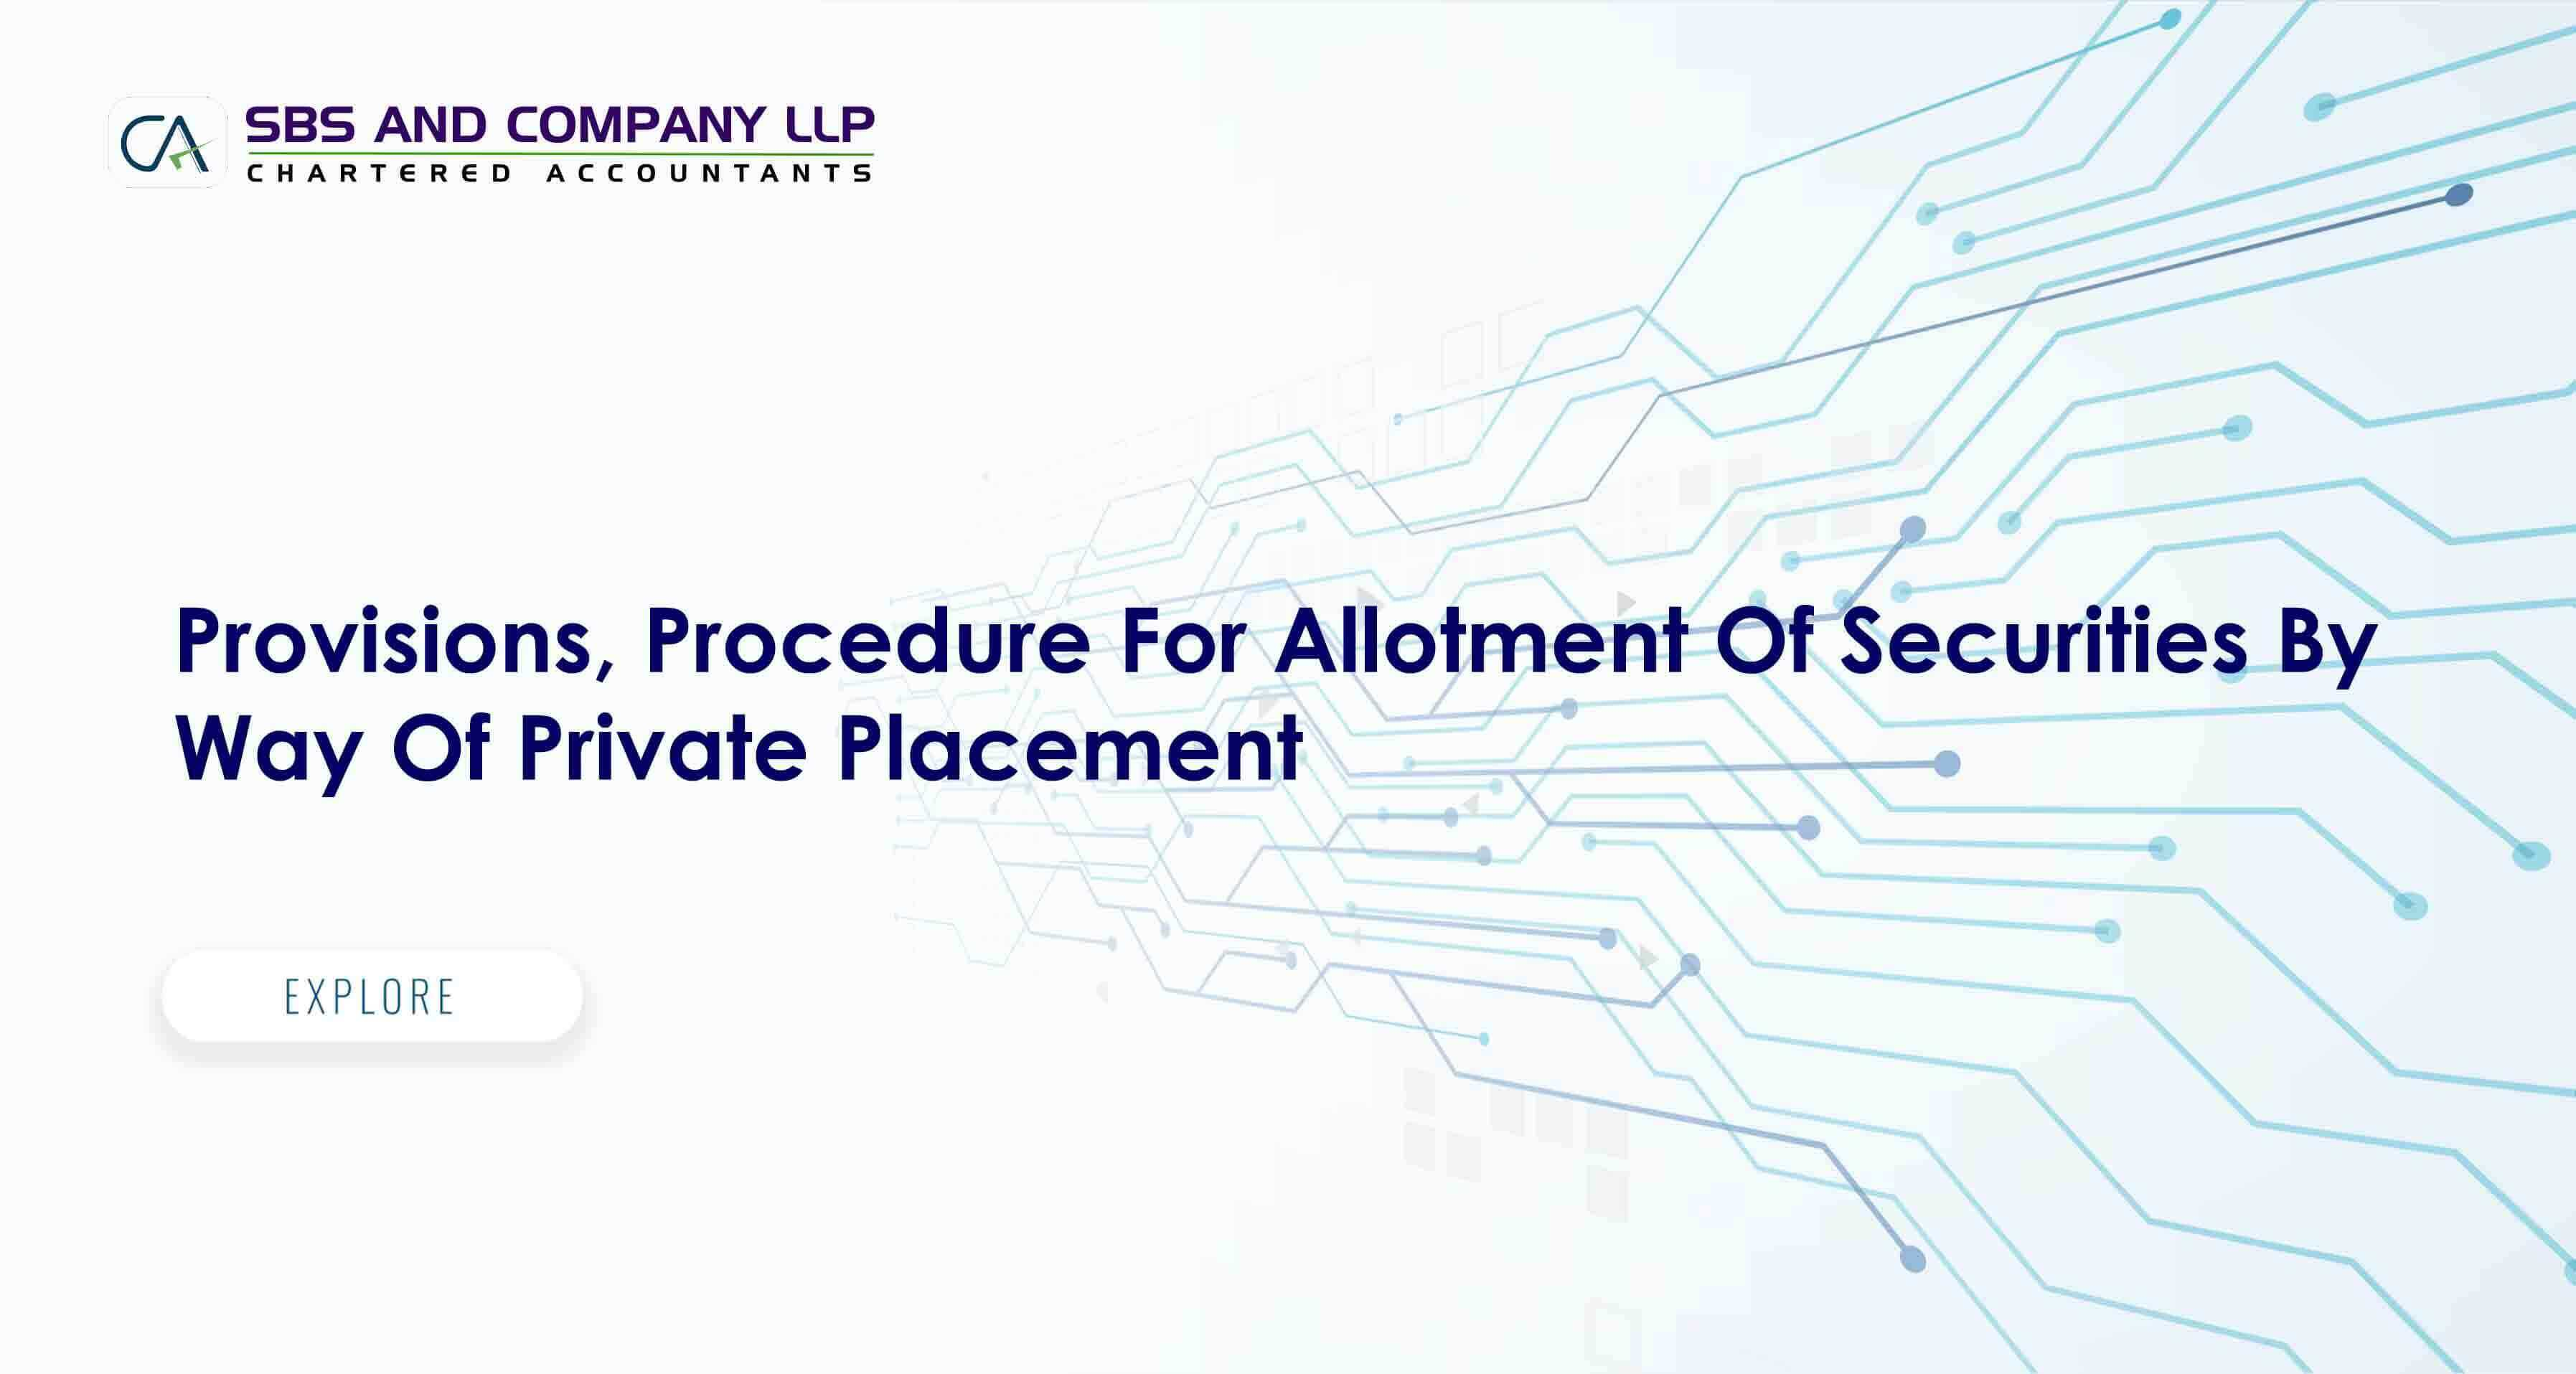 Provisions, Procedure For Allotment Of Securities By Way Of Private Placement